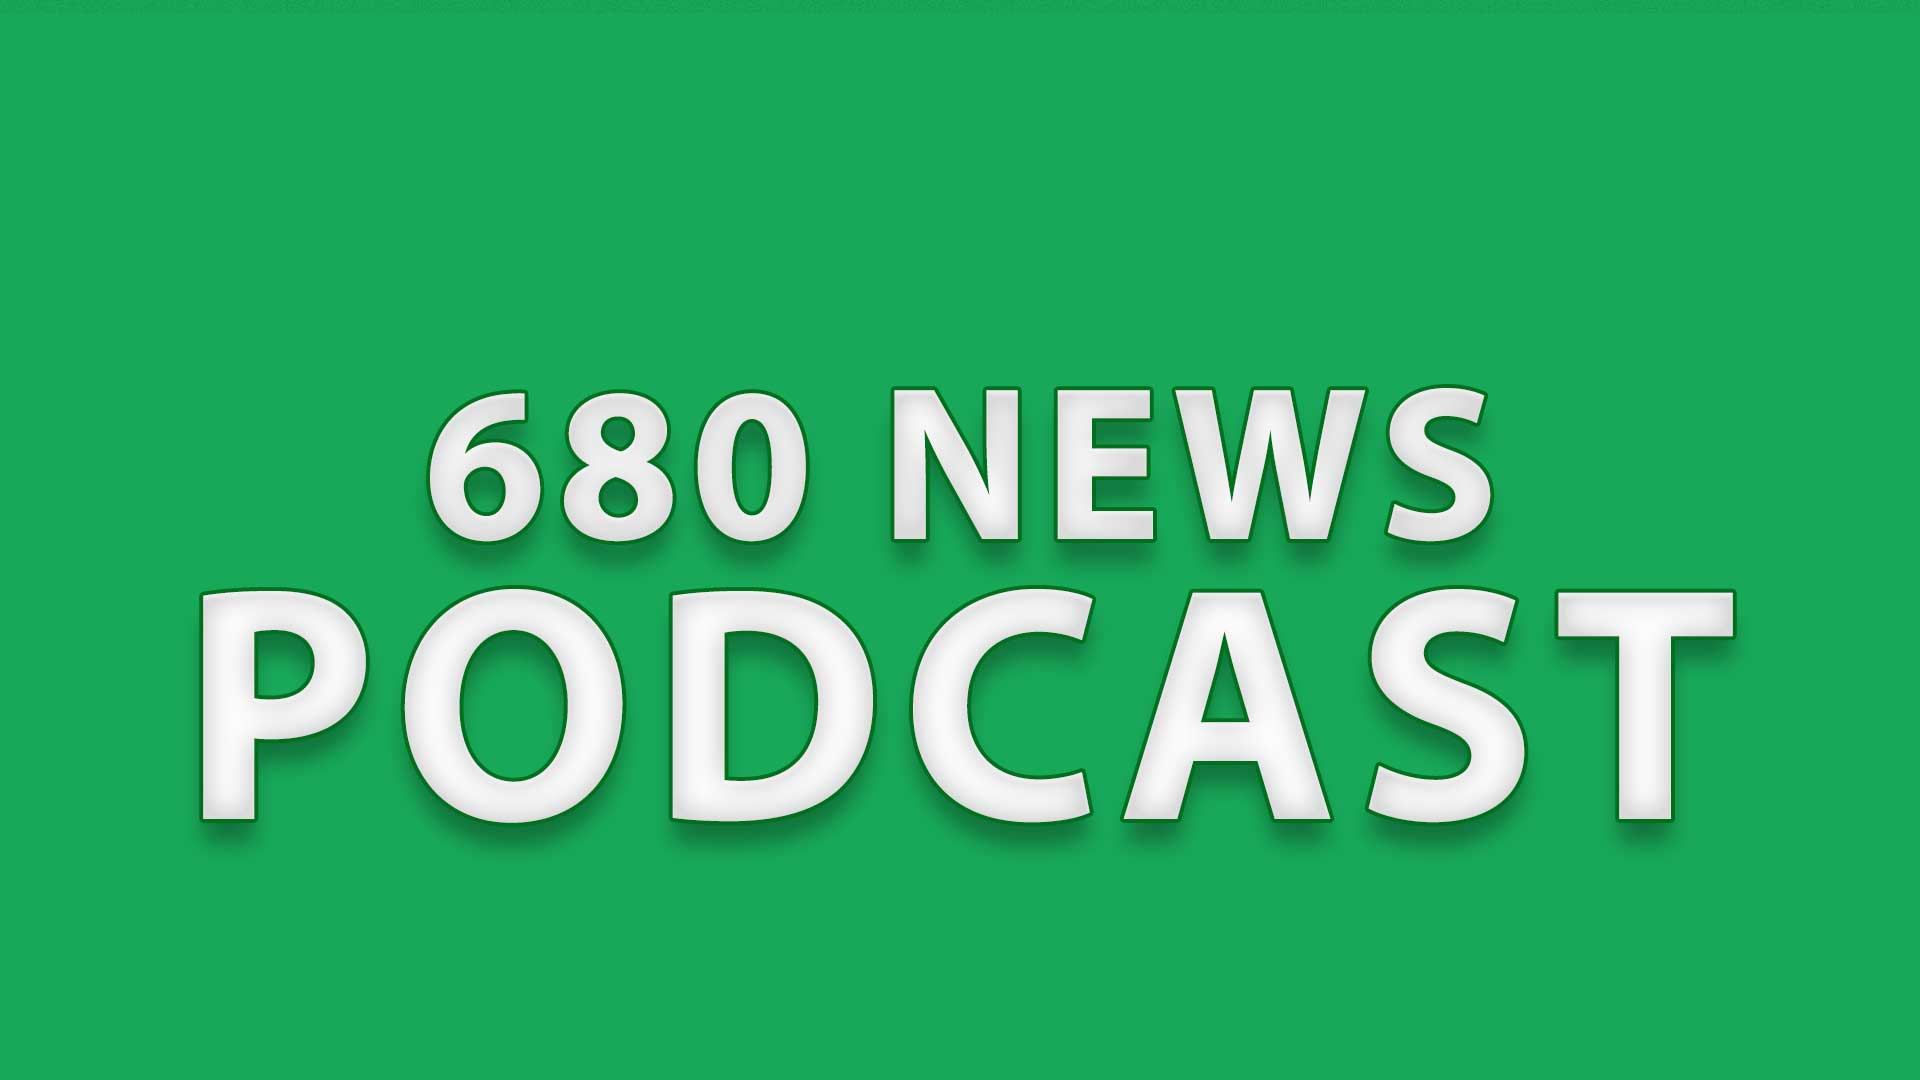 Audio News - 680 News